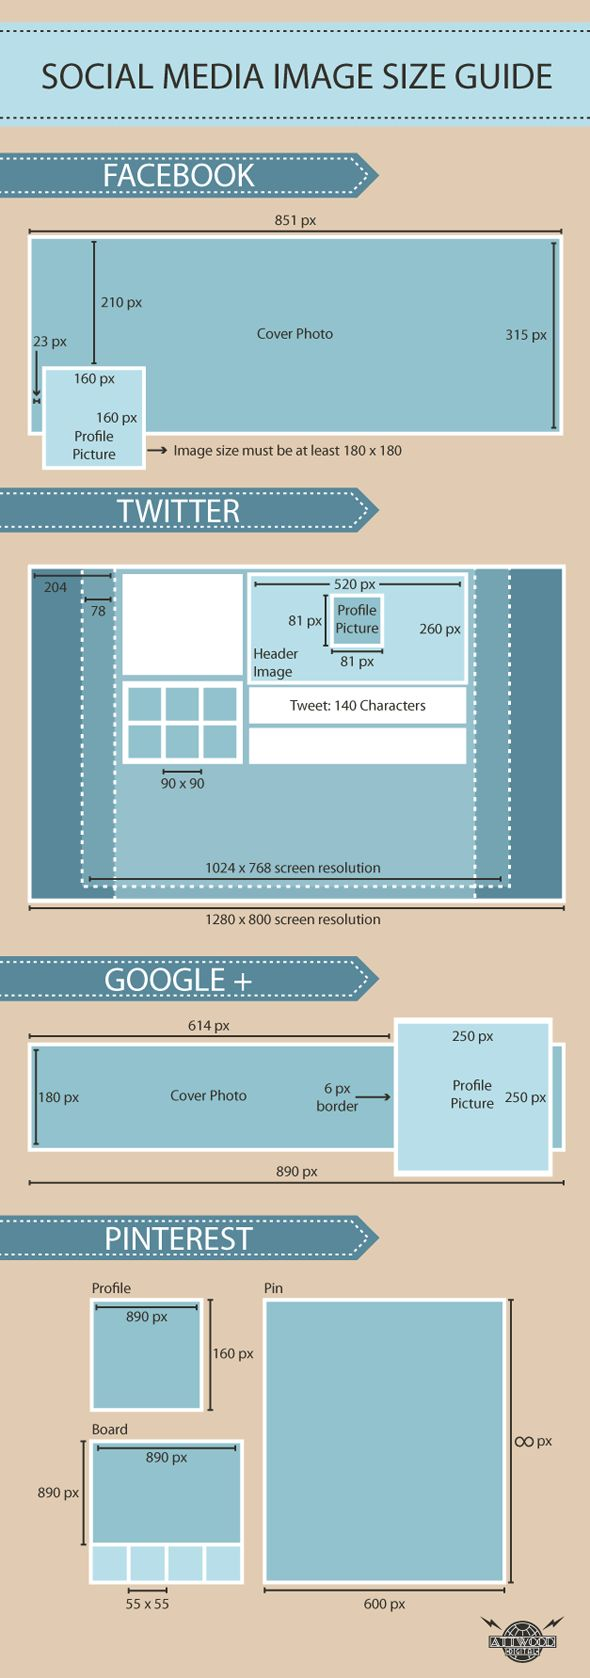 Social Media Image Size Guide - dimensions for the area to display personalized images that fit perfectly on Facebook, Twitter, Google +, and Pinterest